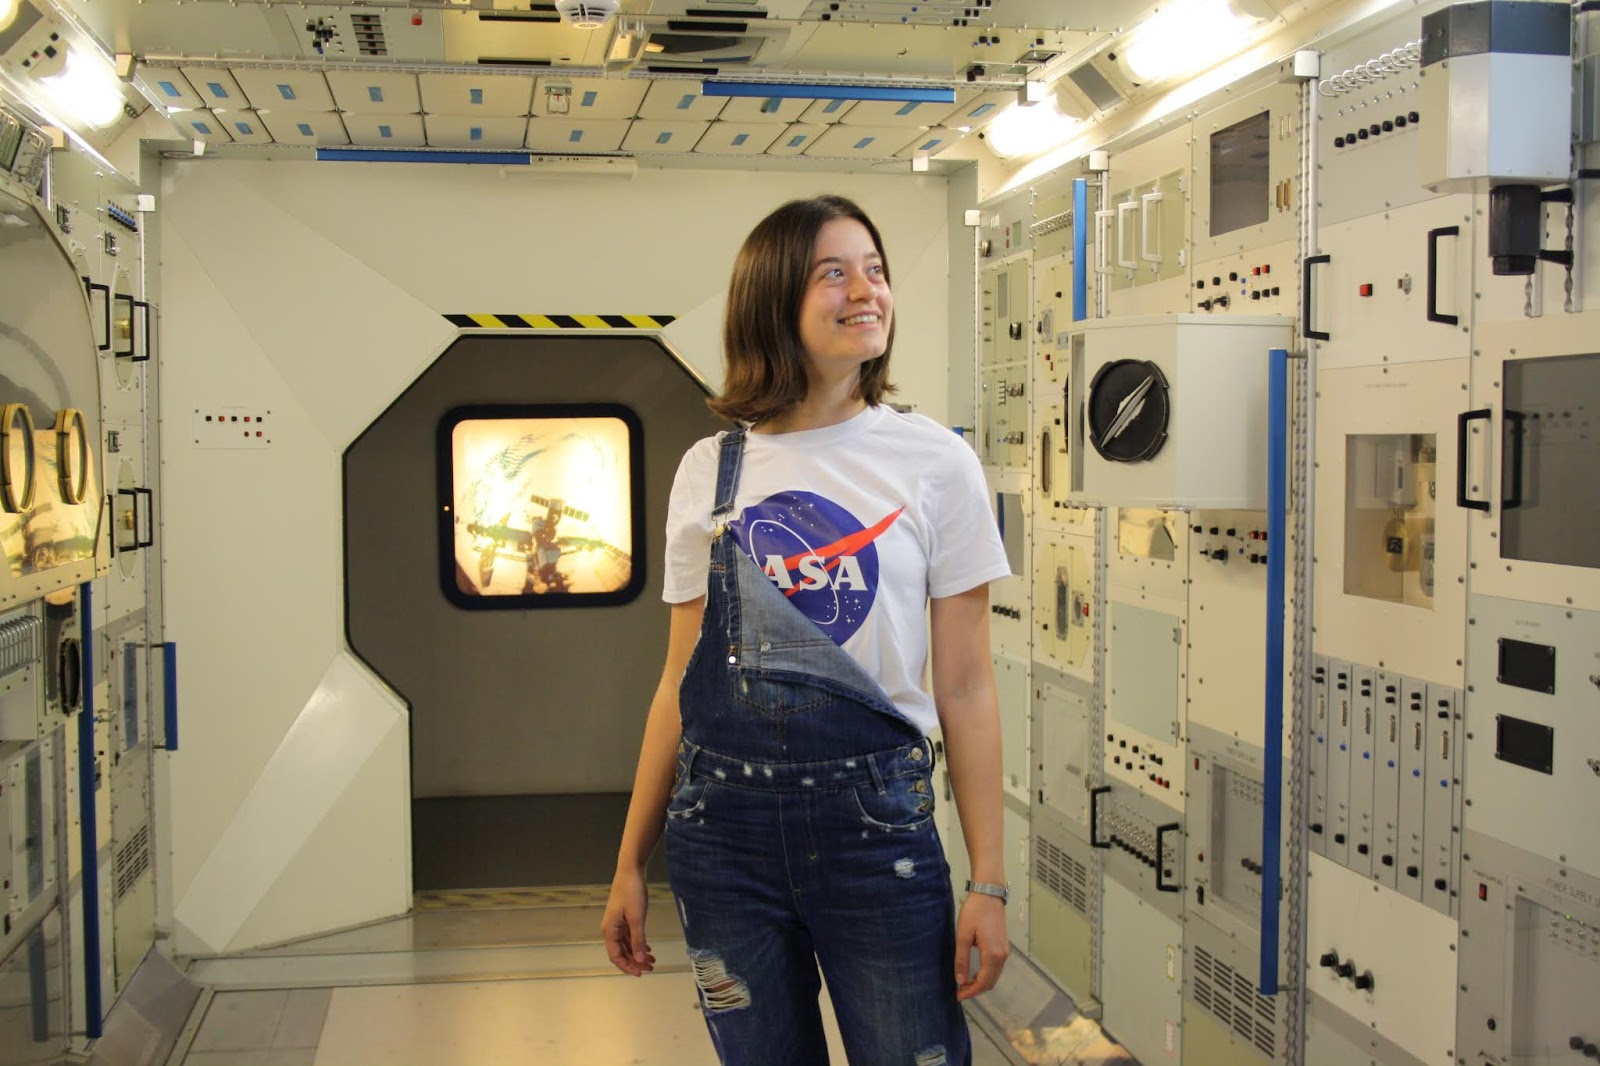 Abbey, wearing a NASA t-shirt and dungarees, stands in a mock-up of a space craft